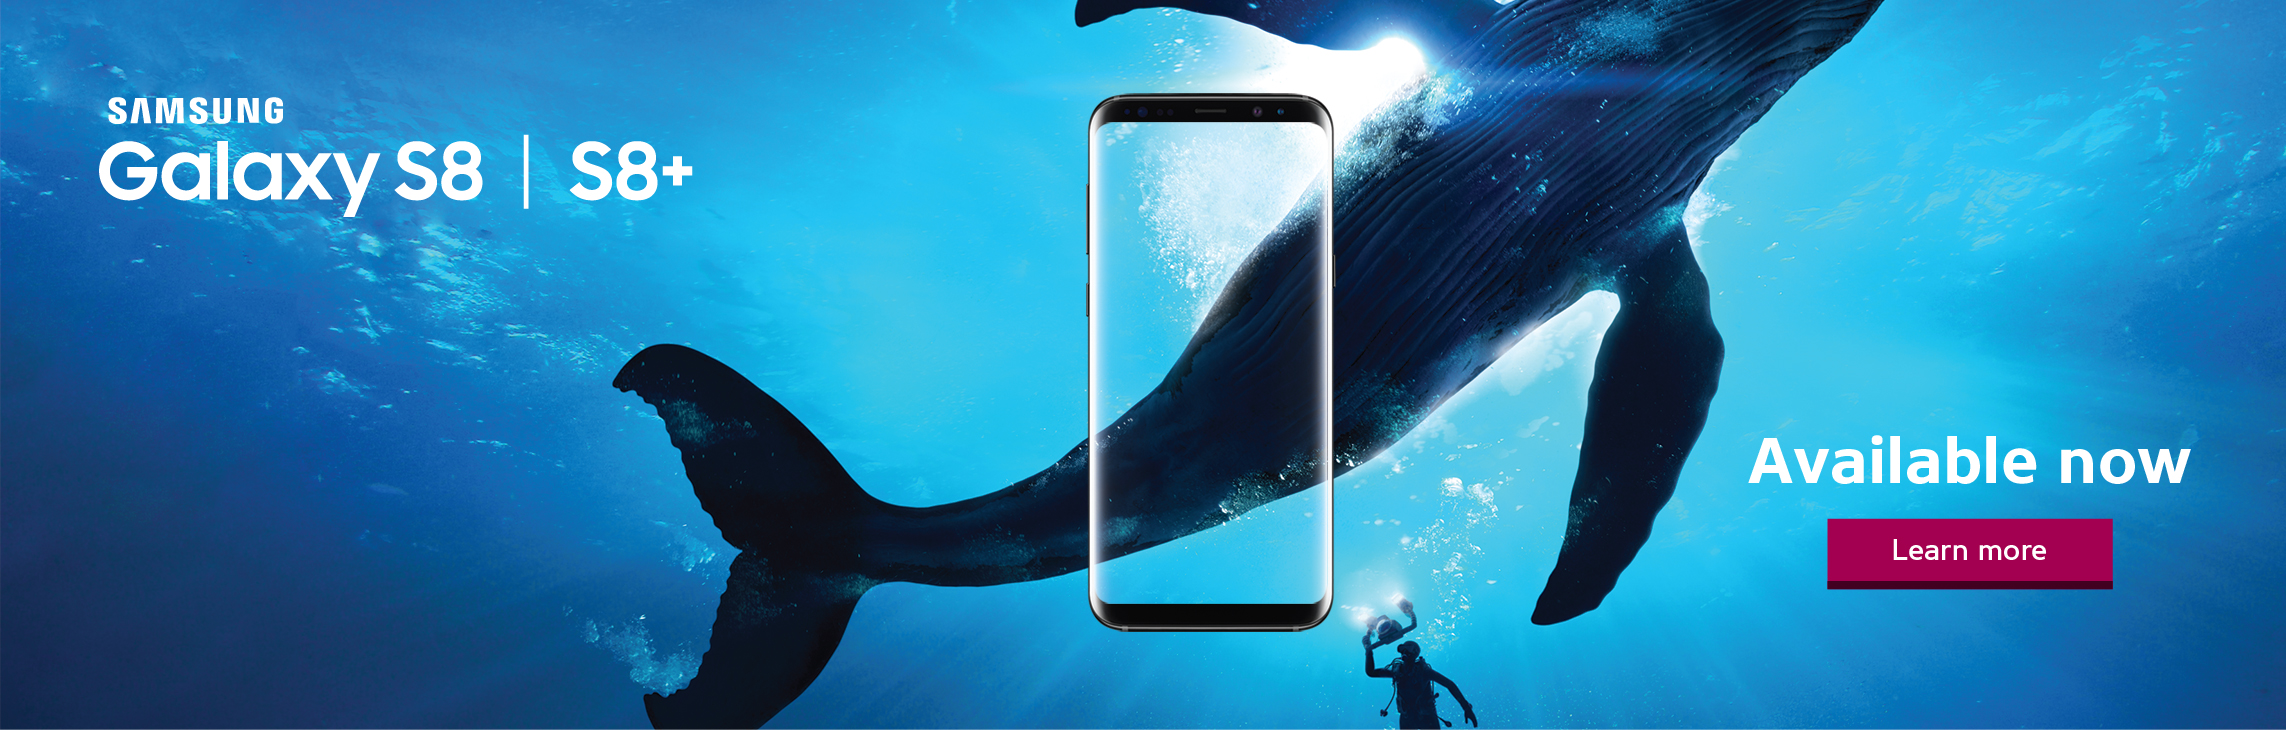 Samsung Galaxy S8 and S8+ are available now at WOW! mobile boutique